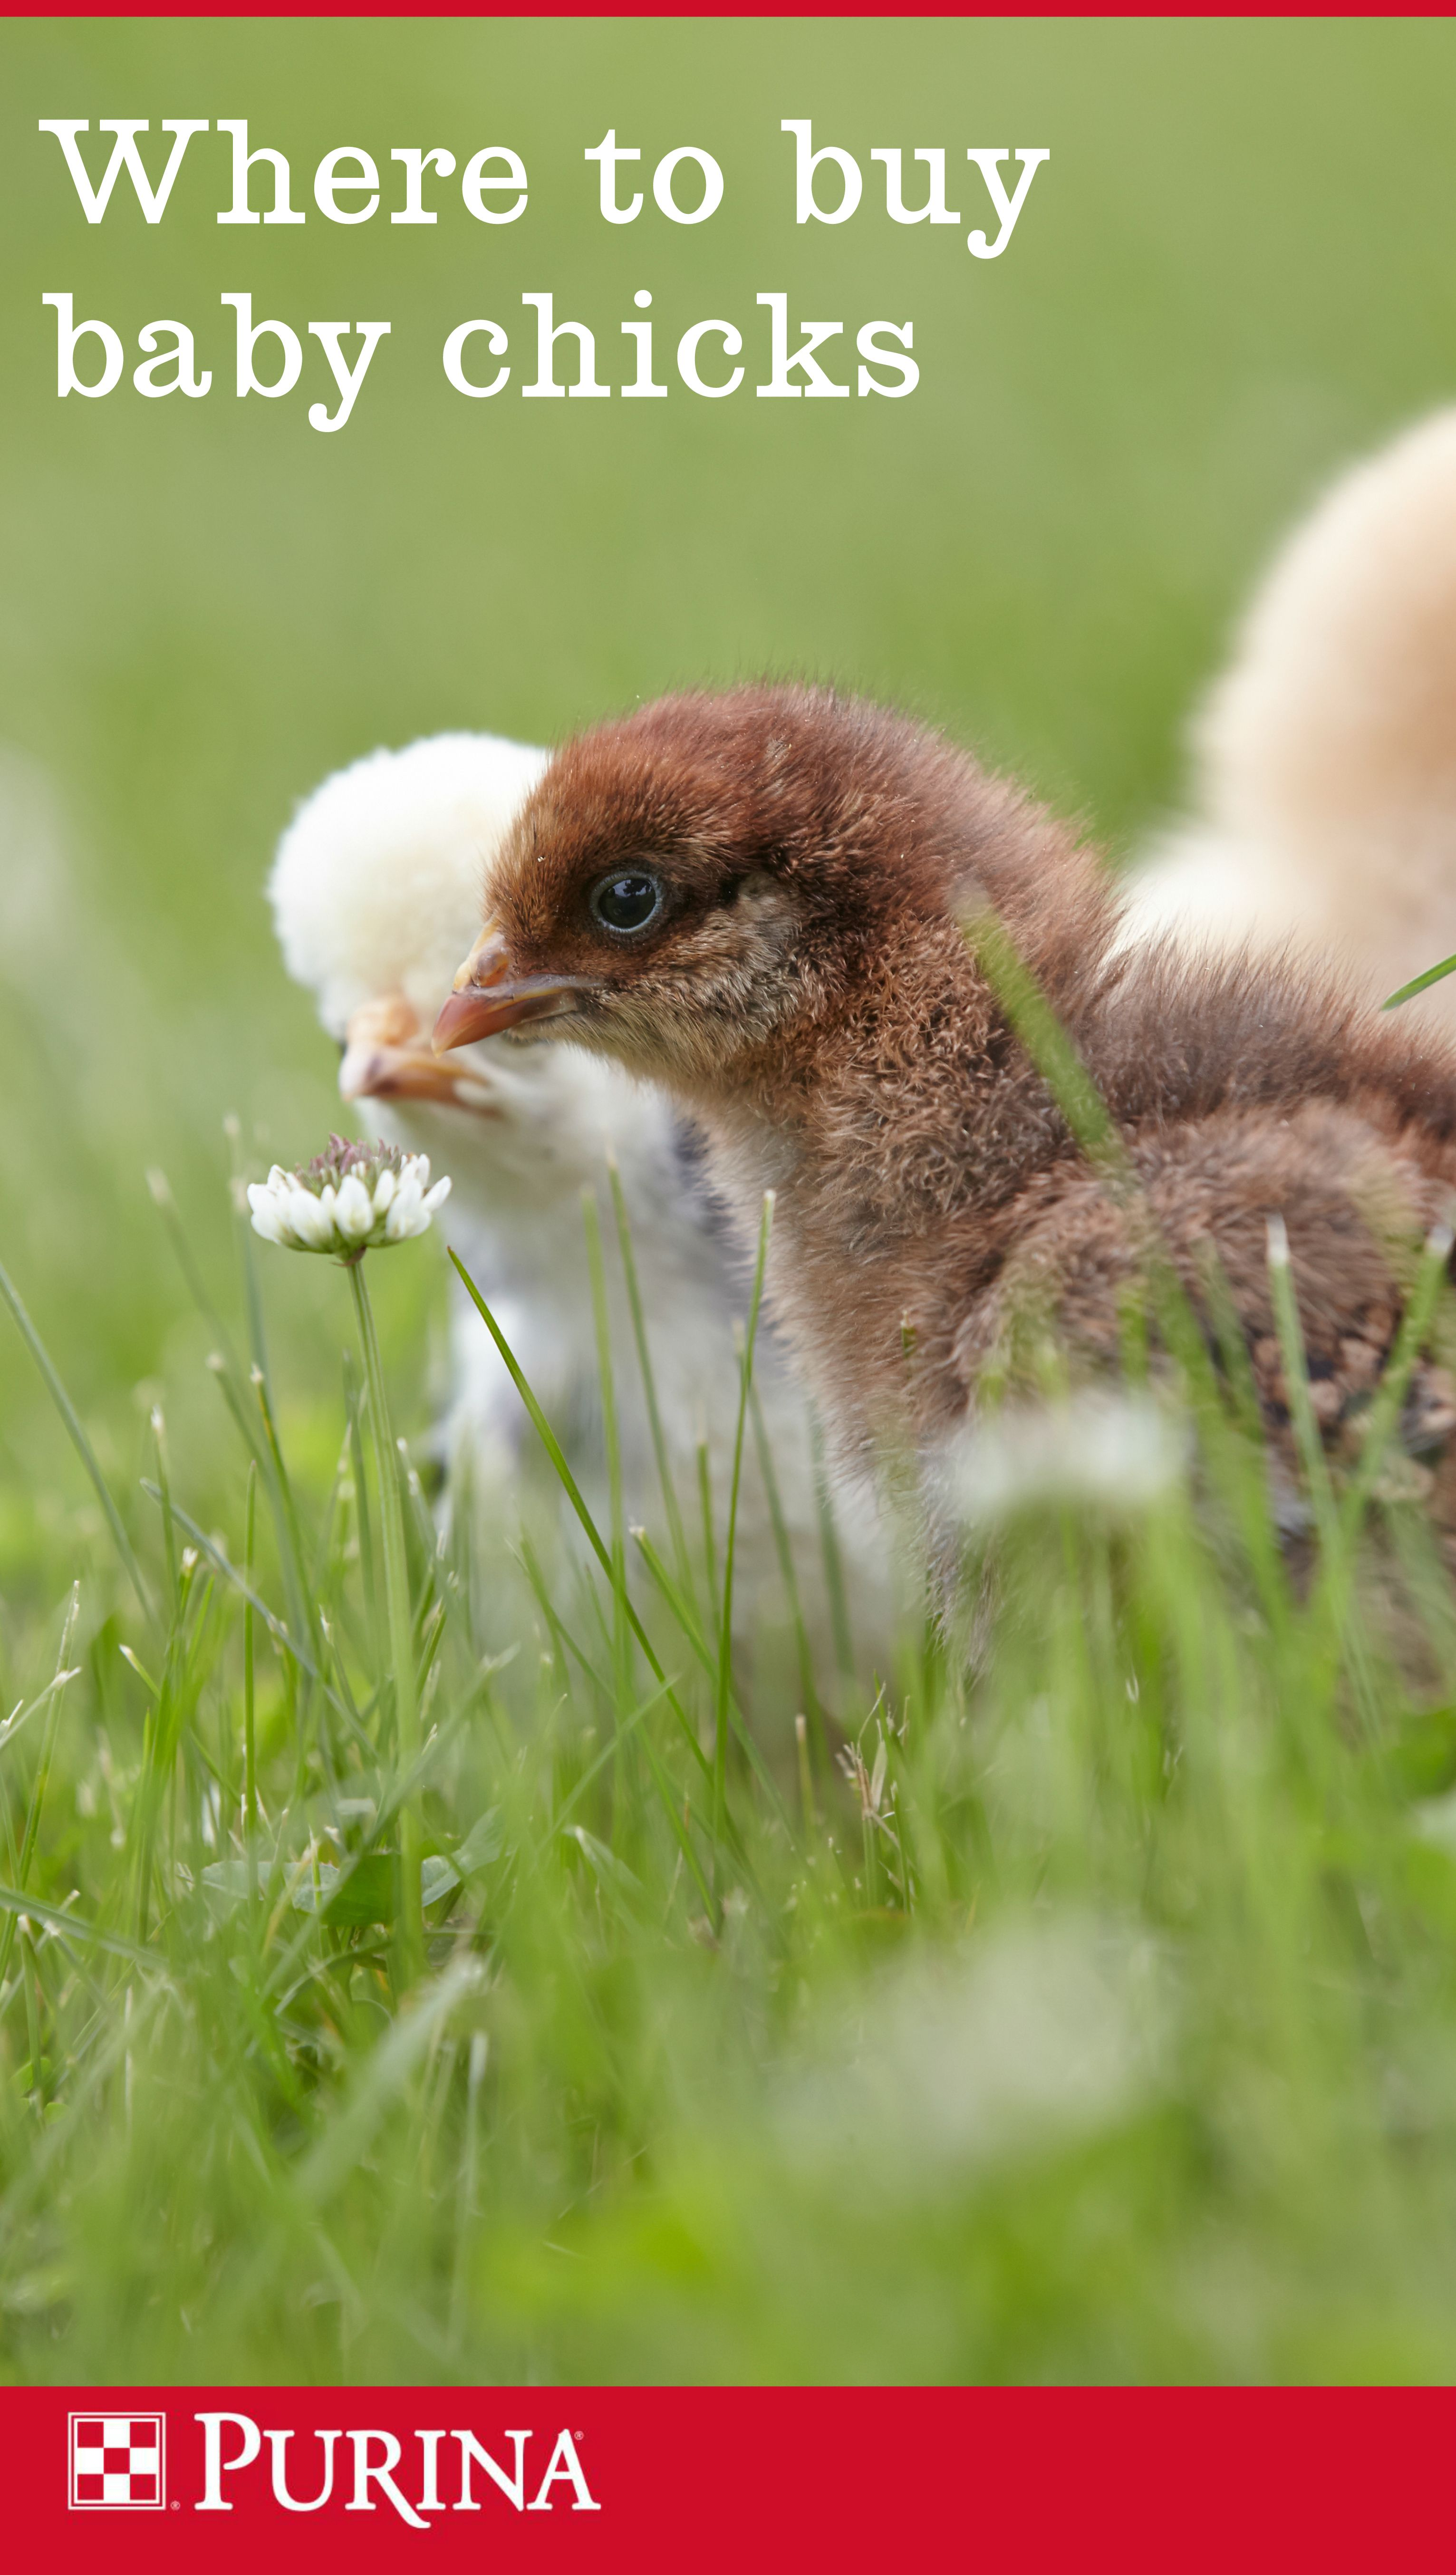 Where can I buy baby chicks? We get this question a lot